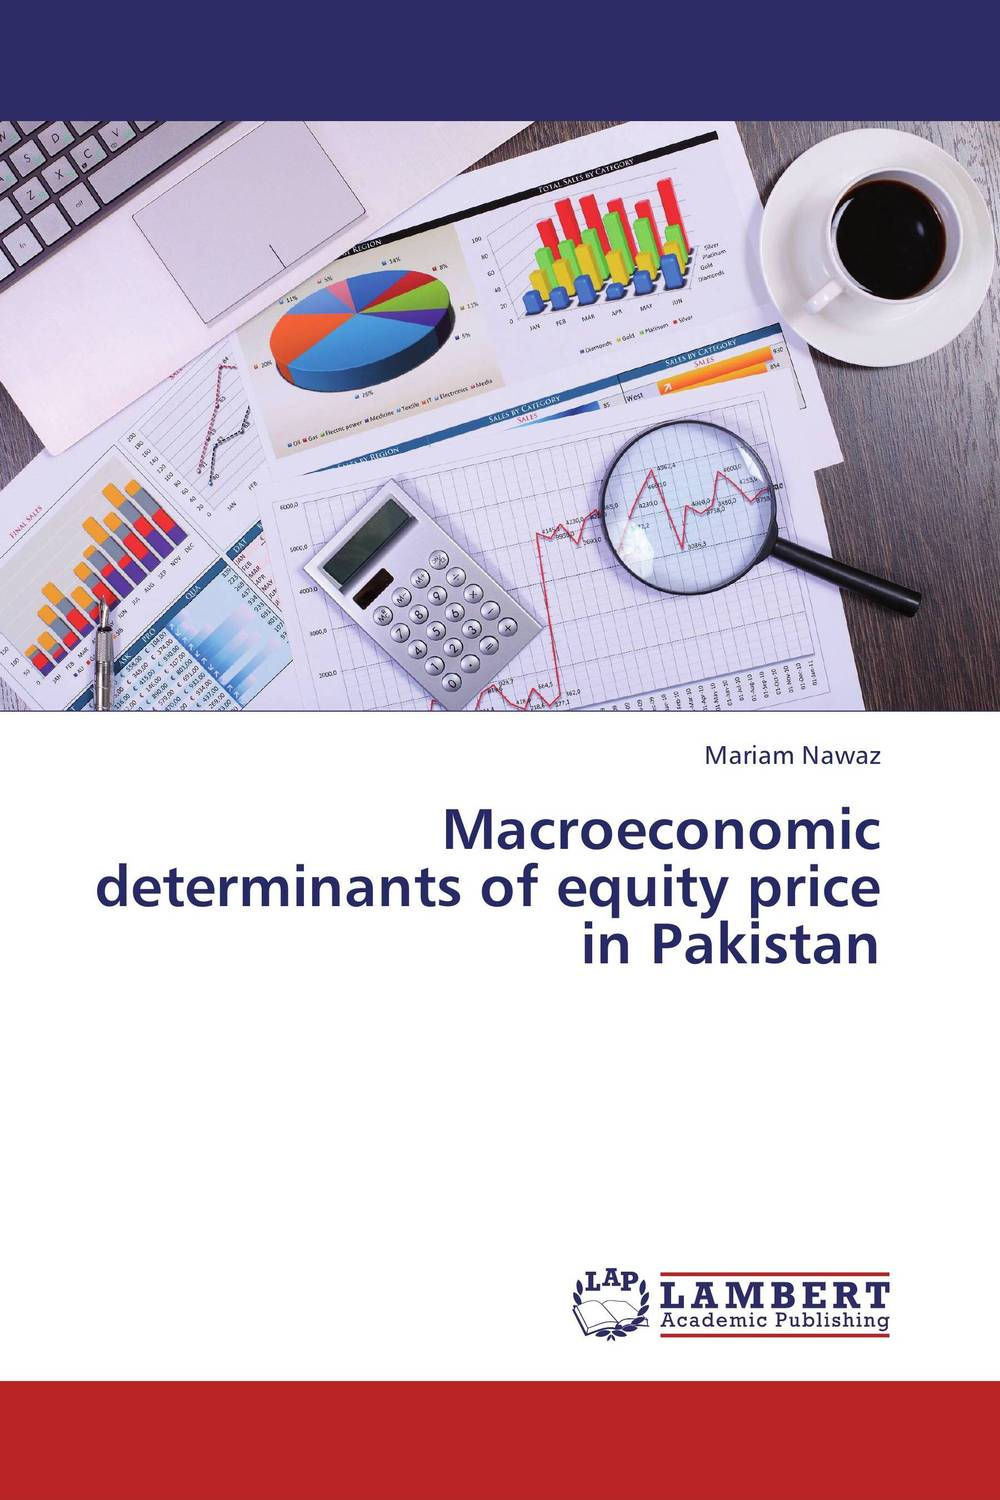 Macroeconomic determinants of equity price in Pakistan seasoned equity offerings in an emerging market